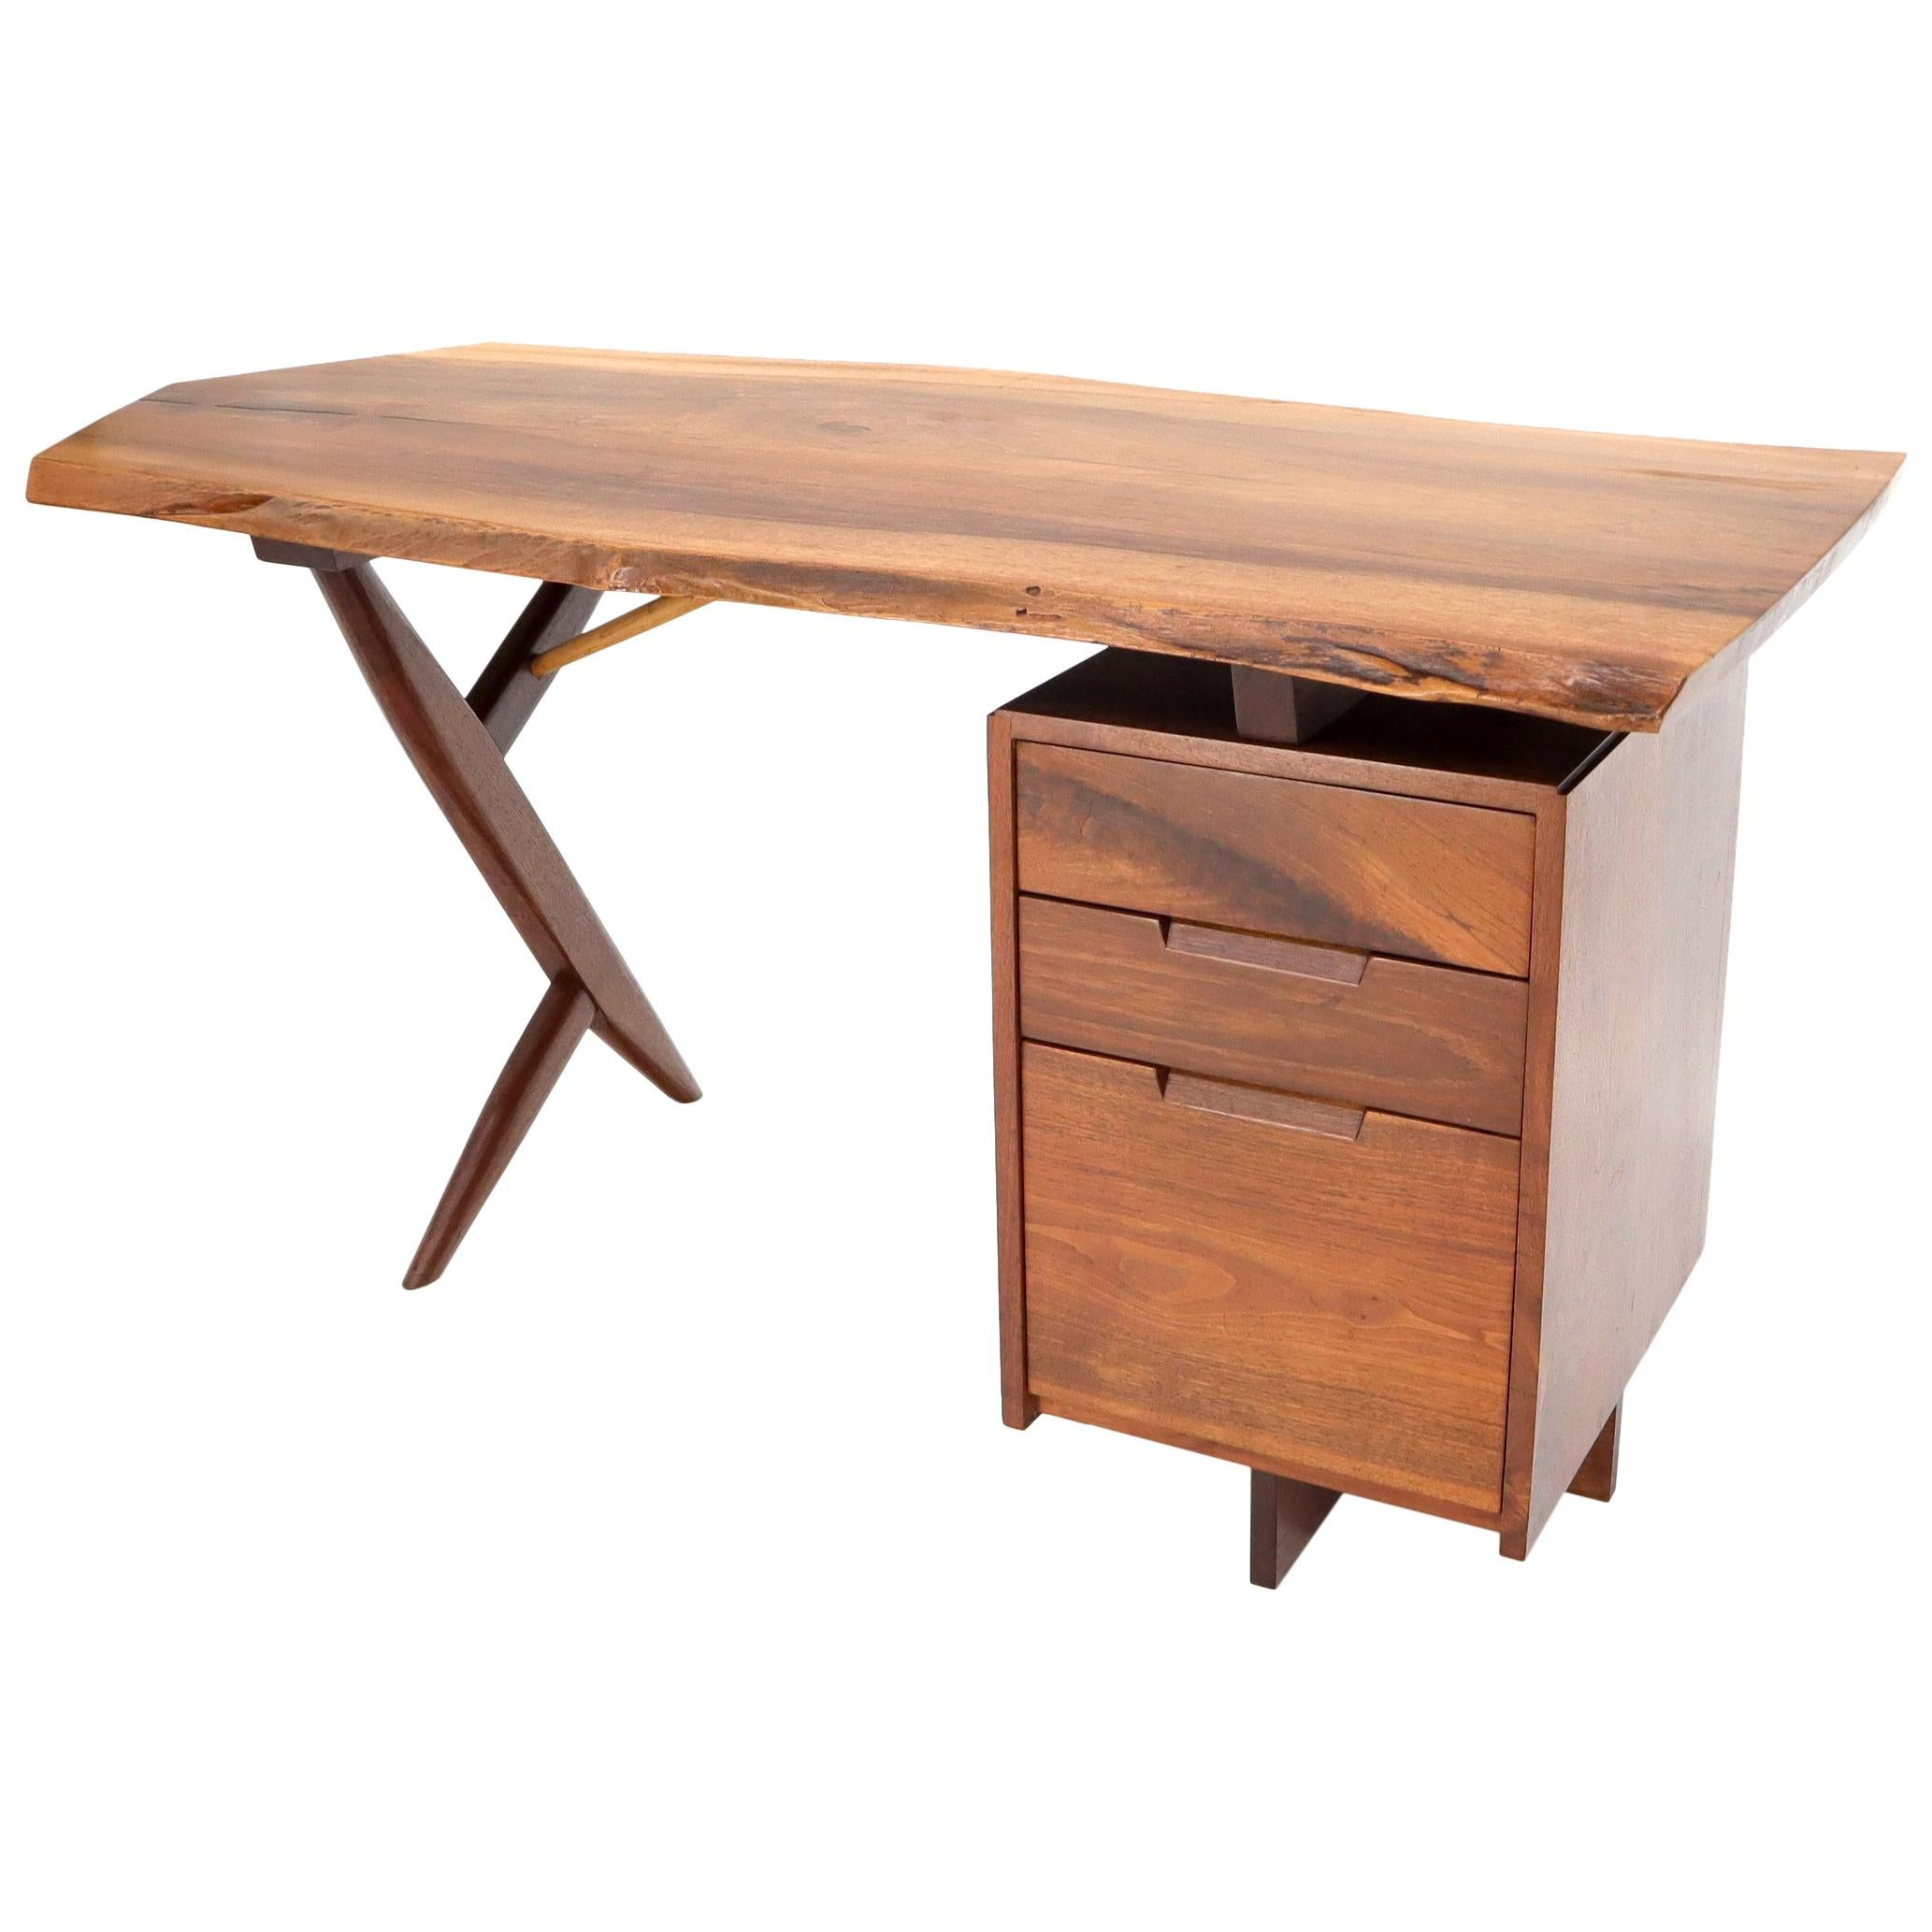 Conoid Cross Leg Desk in Walnut by George Nakashima Dated Documented, 1971